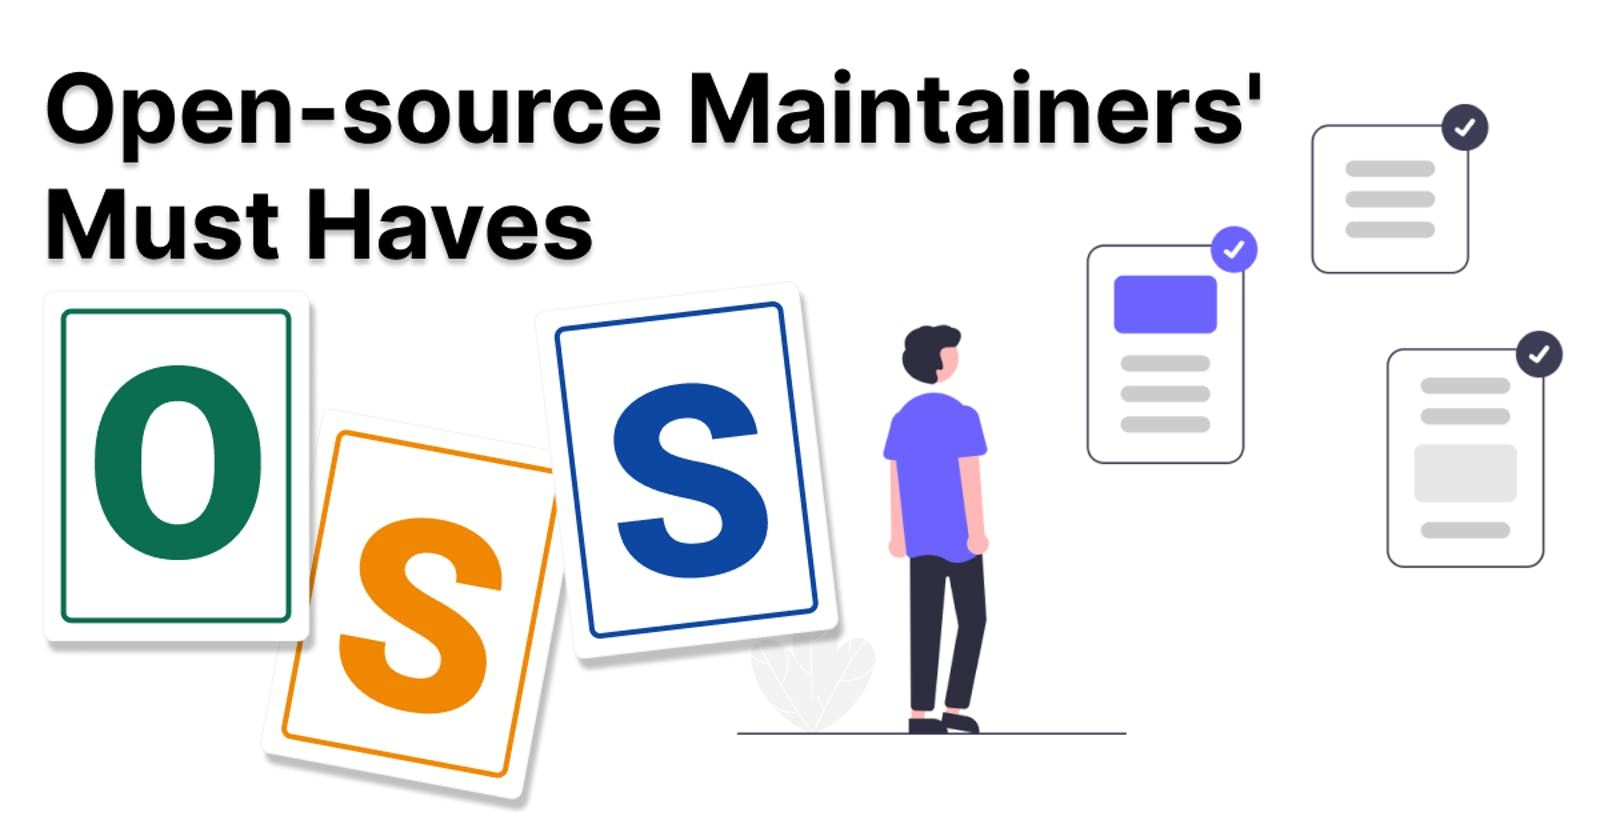 Open-source Maintainers' Must Haves